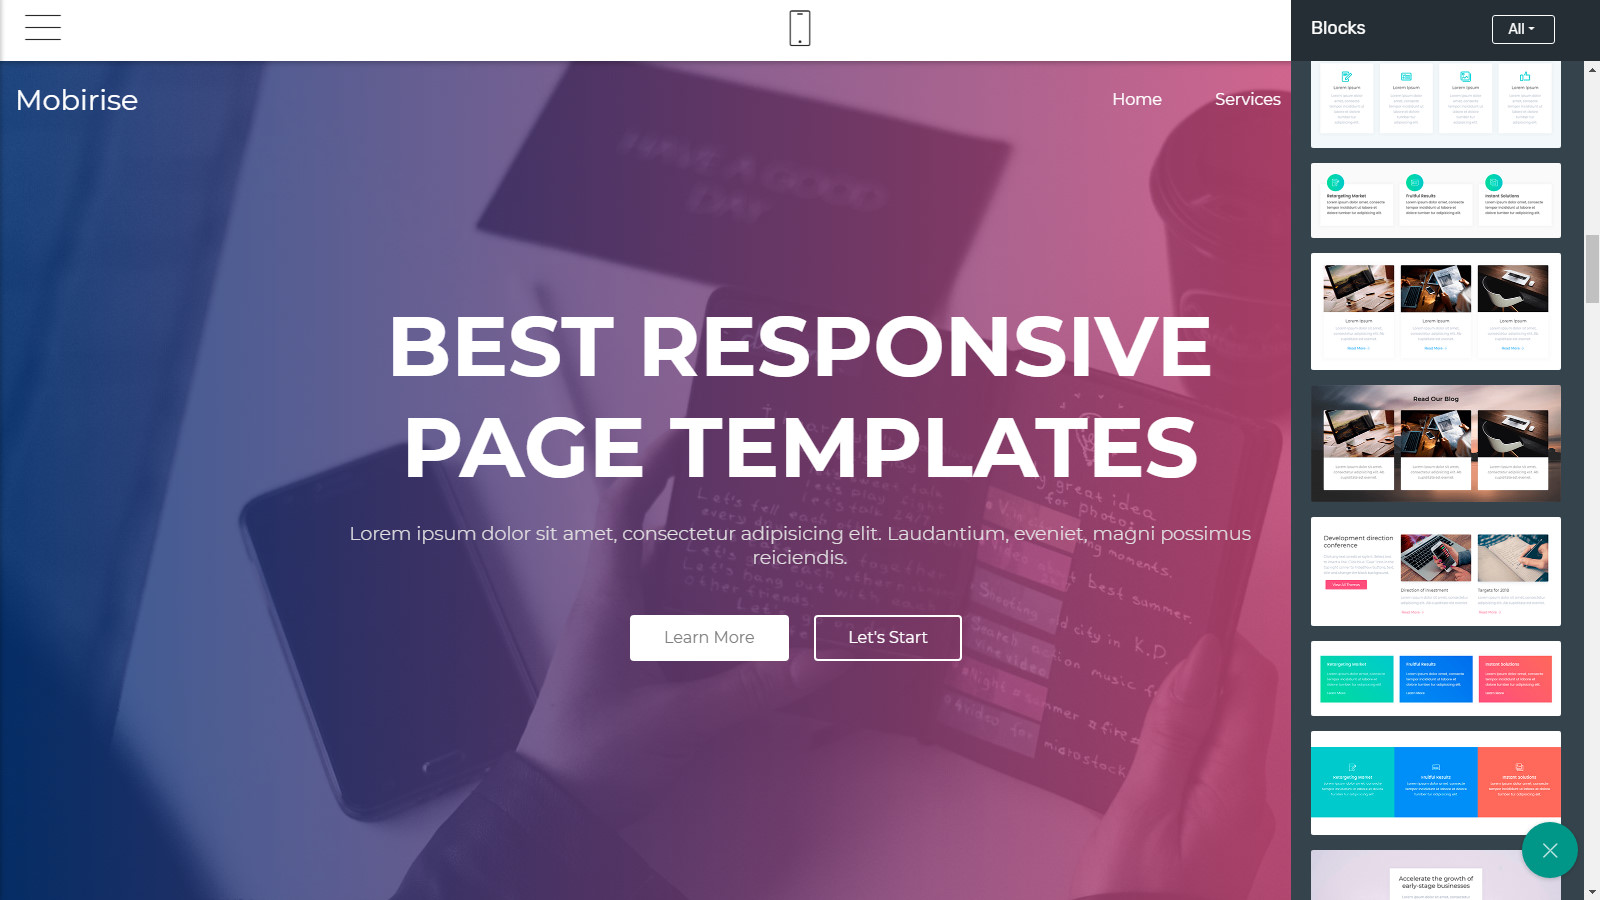 mobile page templates